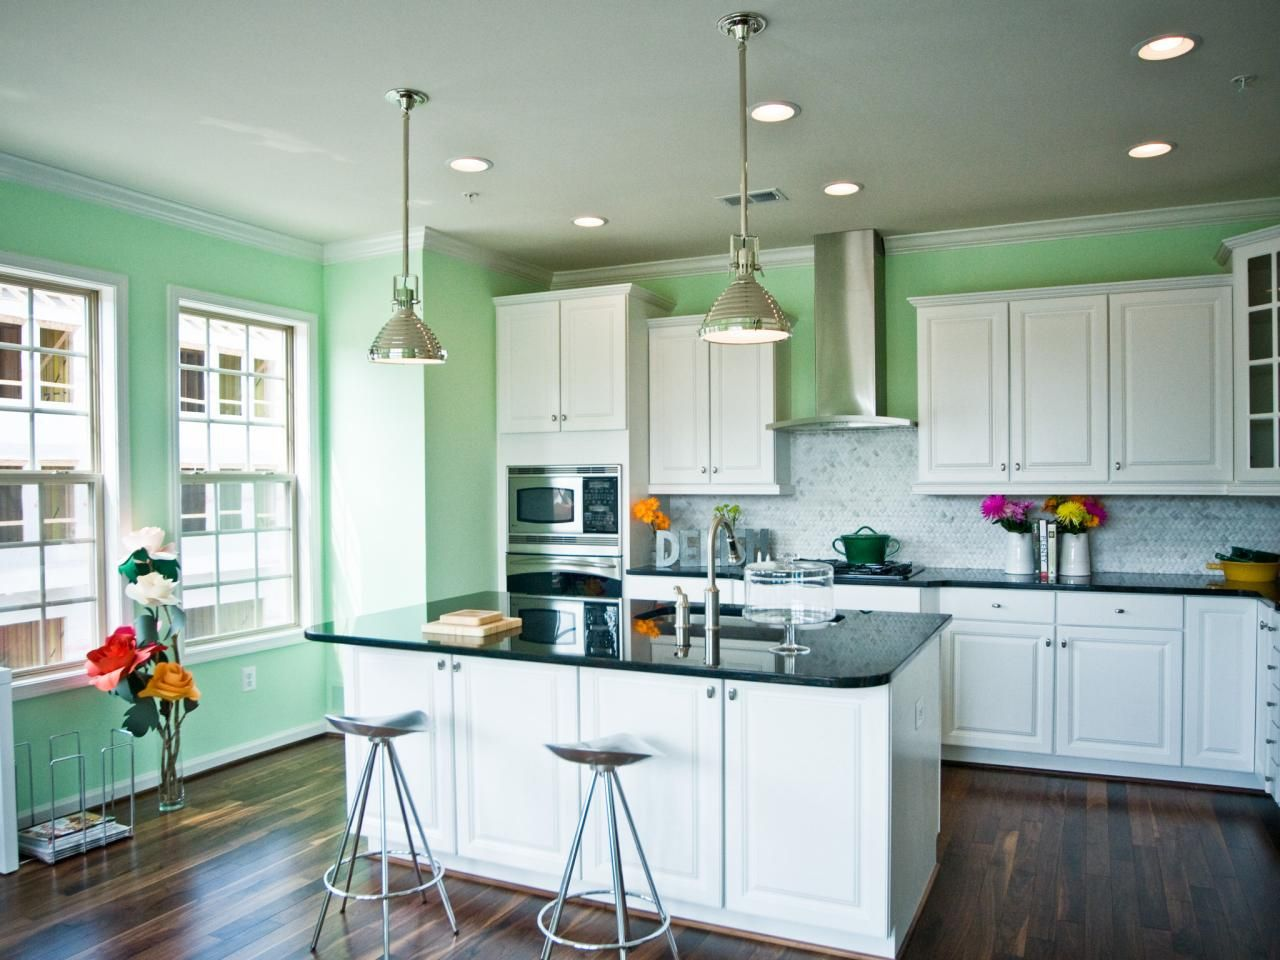 Pictures of Kitchen Cabinets: Ideas & Inspiration From | Hgtv ...